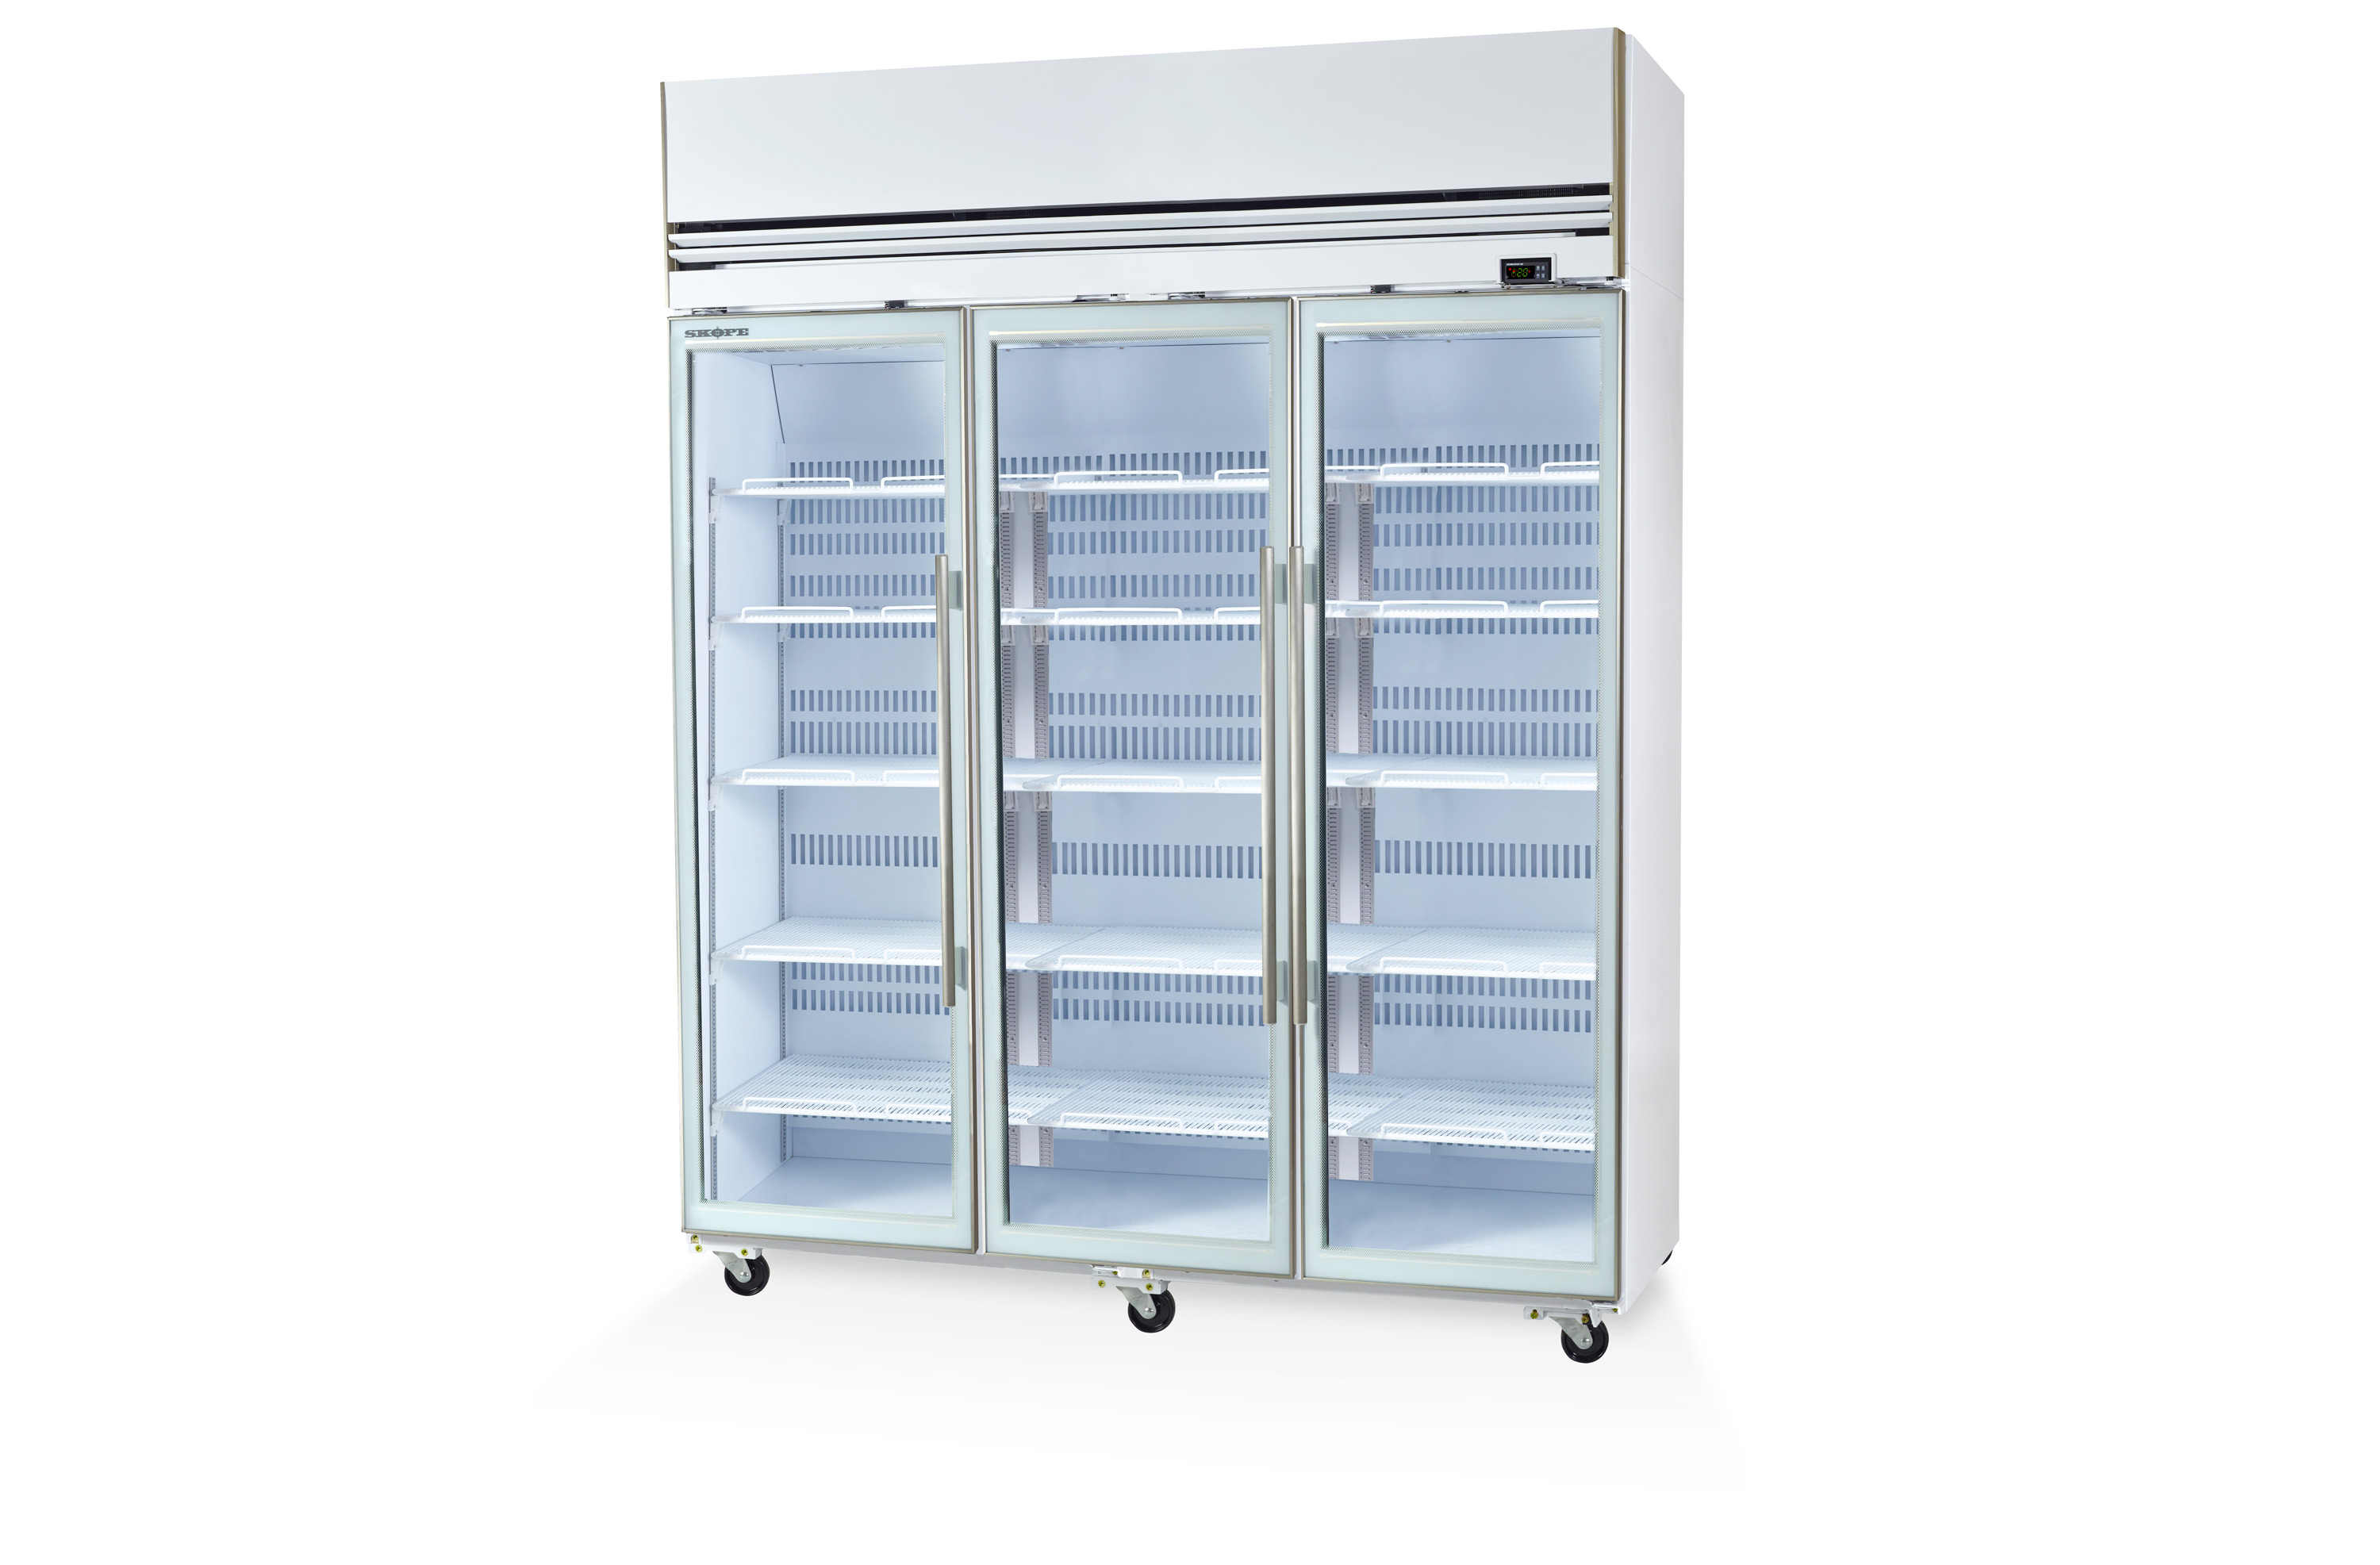 Advantages Of The Commercial Upright Freezer That Can Be Useful To Your Business